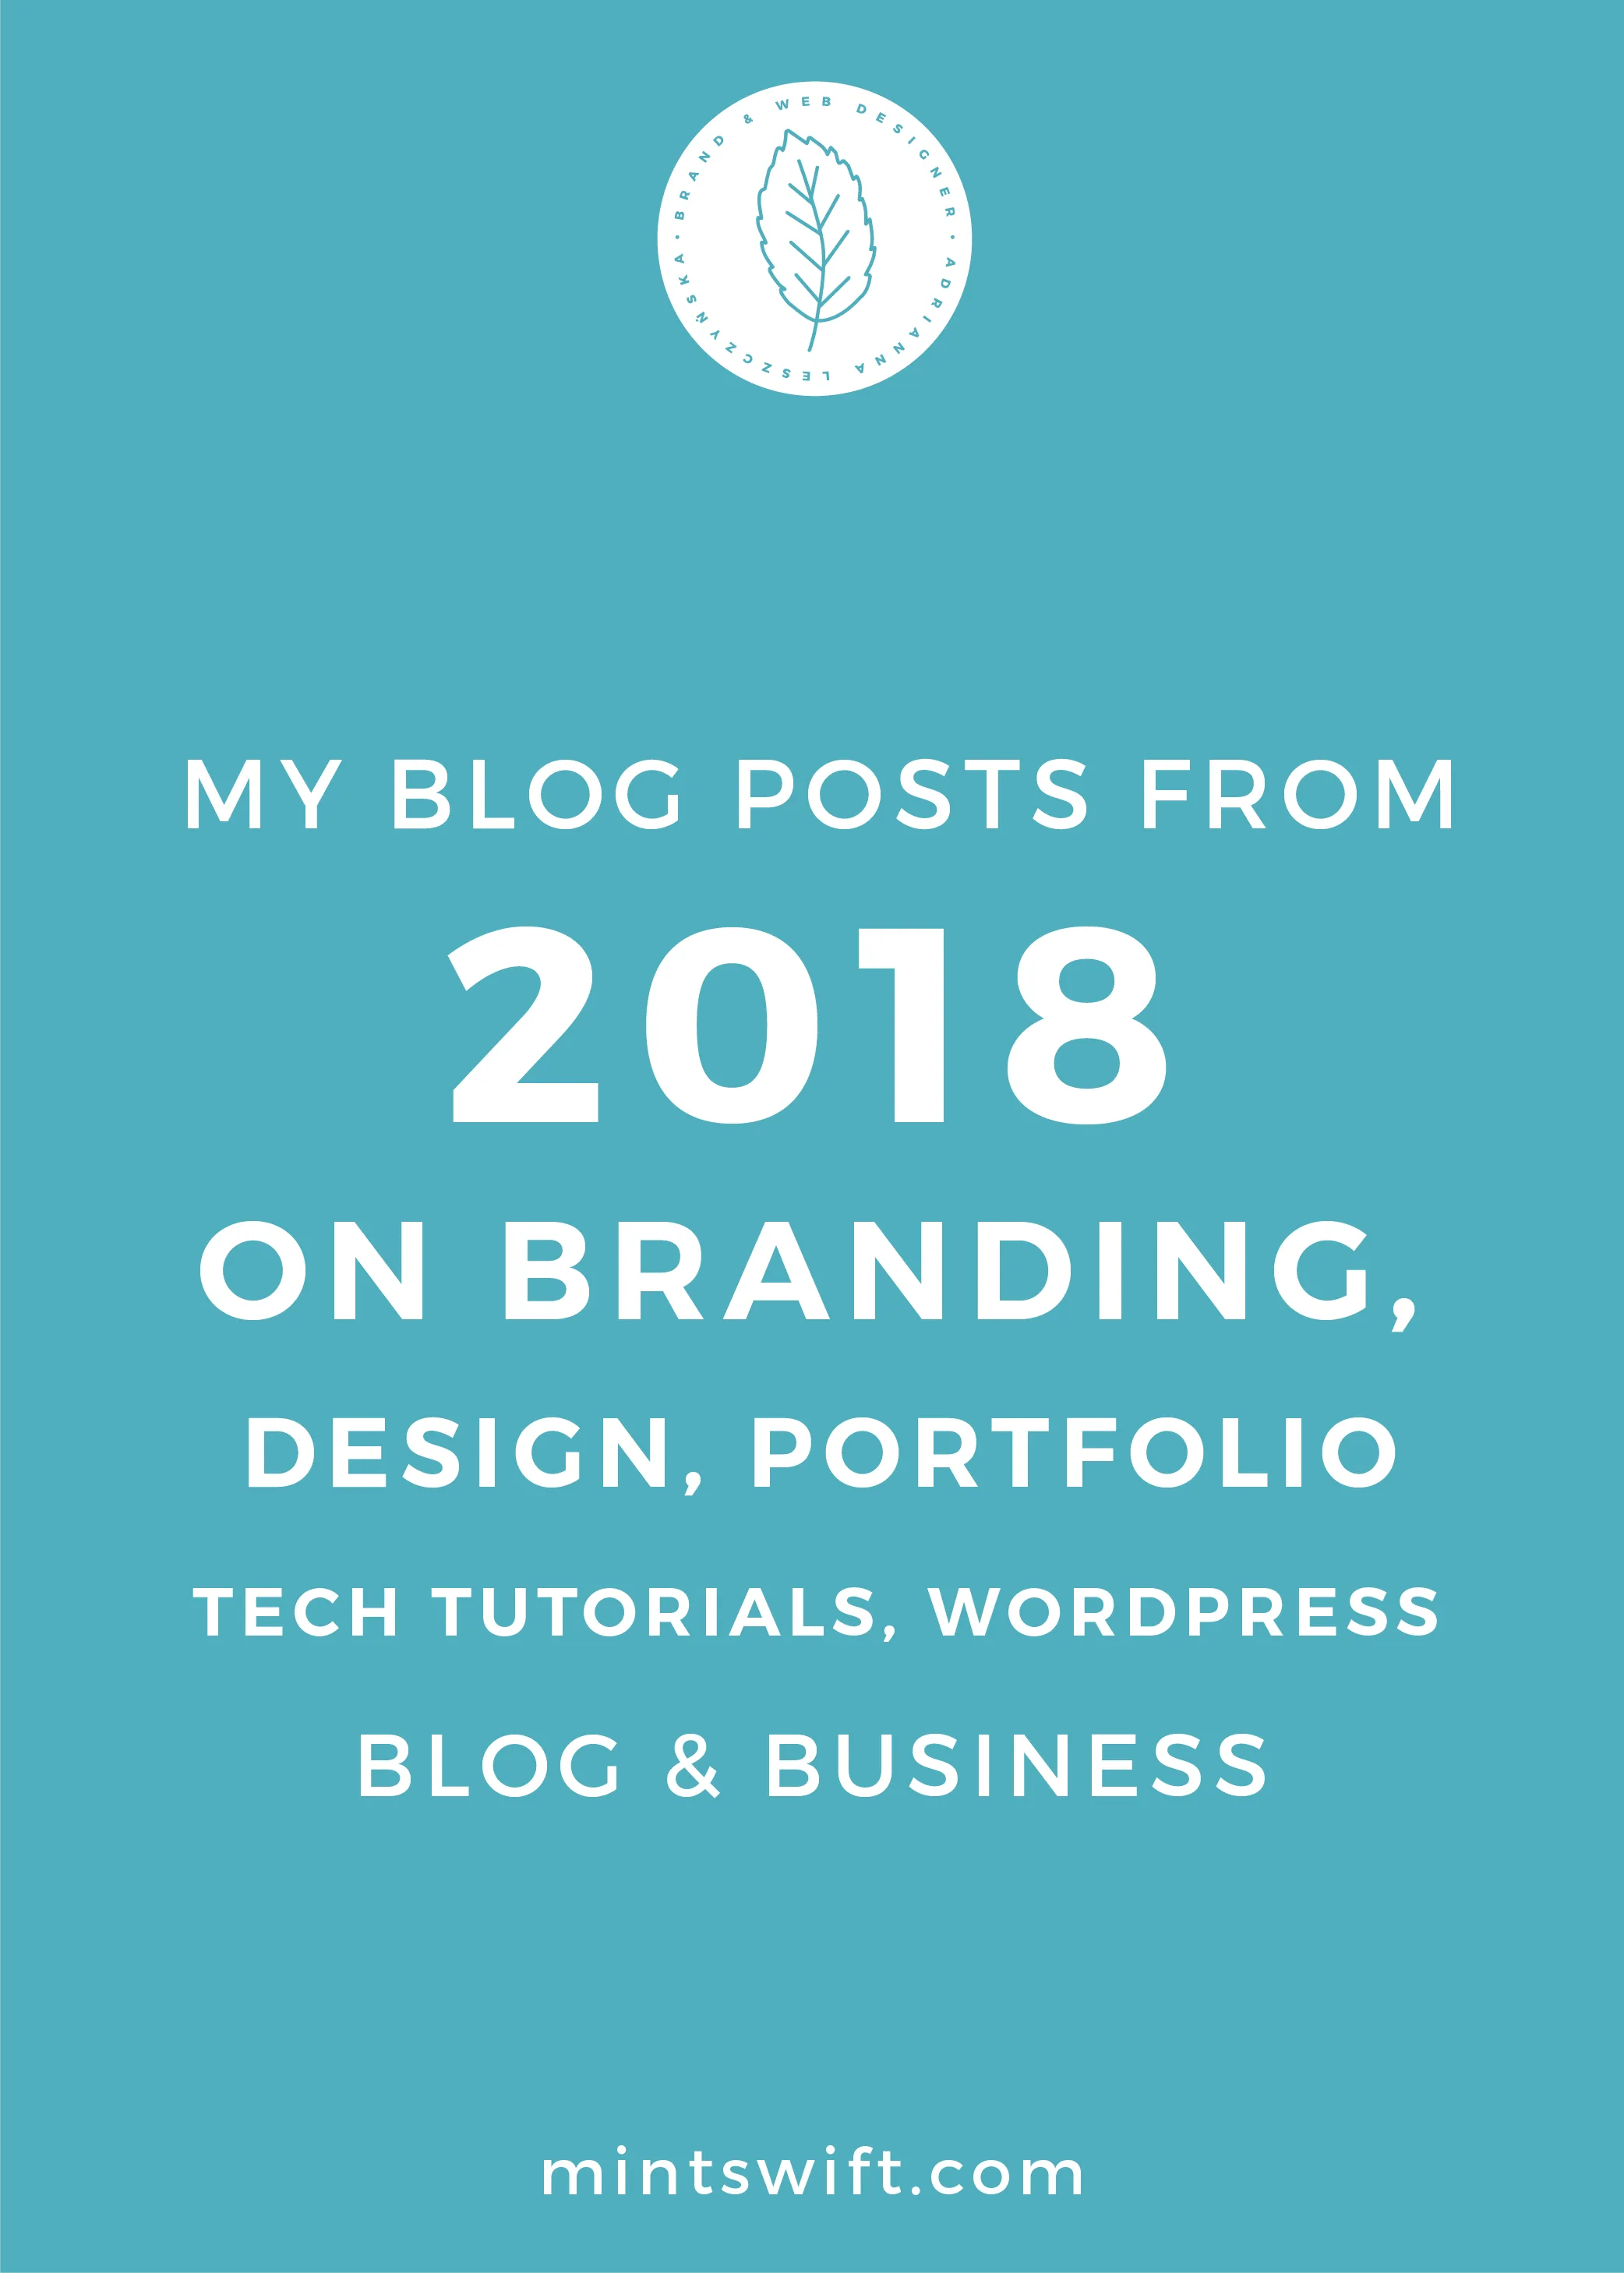 My Blog Posts from 2018 on Branding, Design, Portfolio, Tech Tutorials, WordPress, Blog and Business - MintSwift